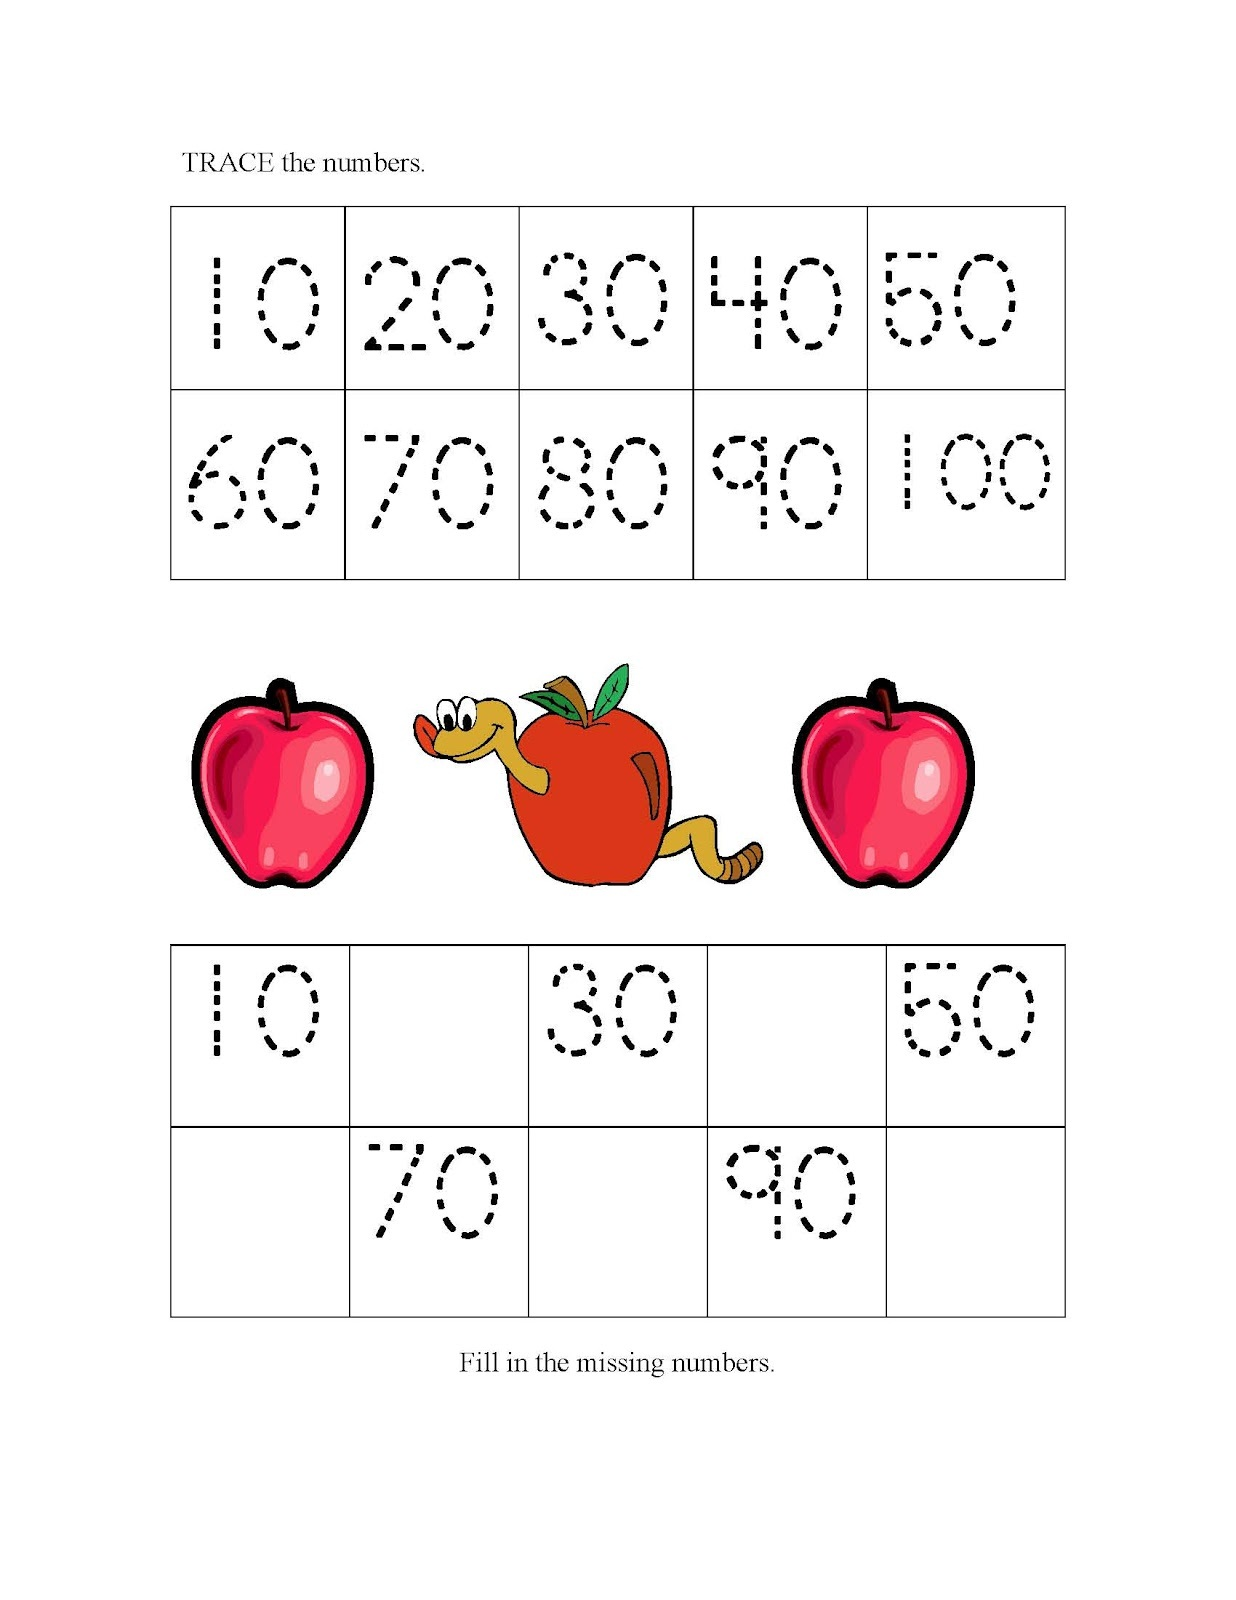 D F E C D Db together with Dffcdb D C A D D Short Words Making Words further By S Skip Counting moreover Fill The Missing Numbers In Pattern together with Count By S Worksheet For Child. on fill in number line worksheet